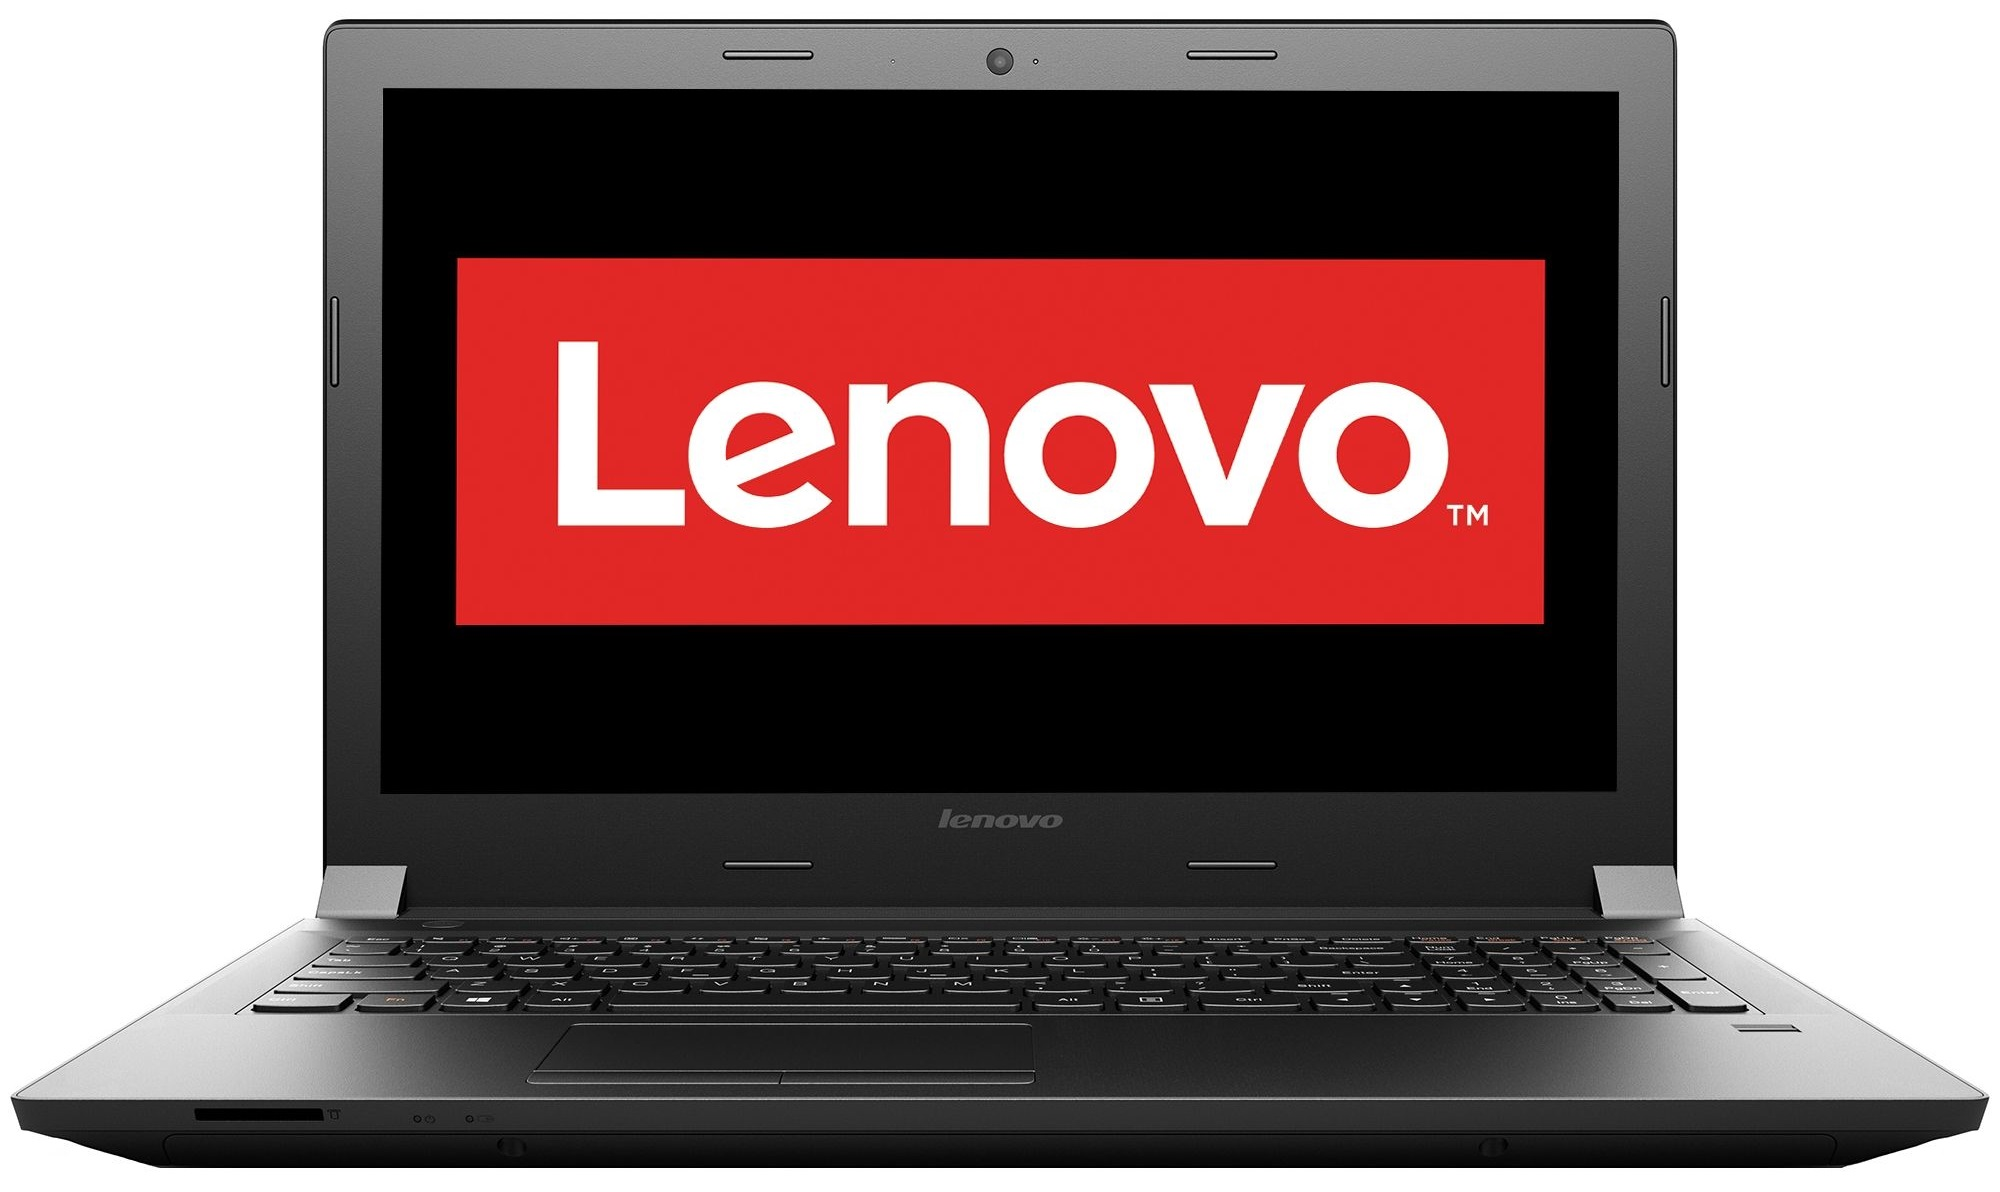 Unboxing laptop Lenovo B50-80